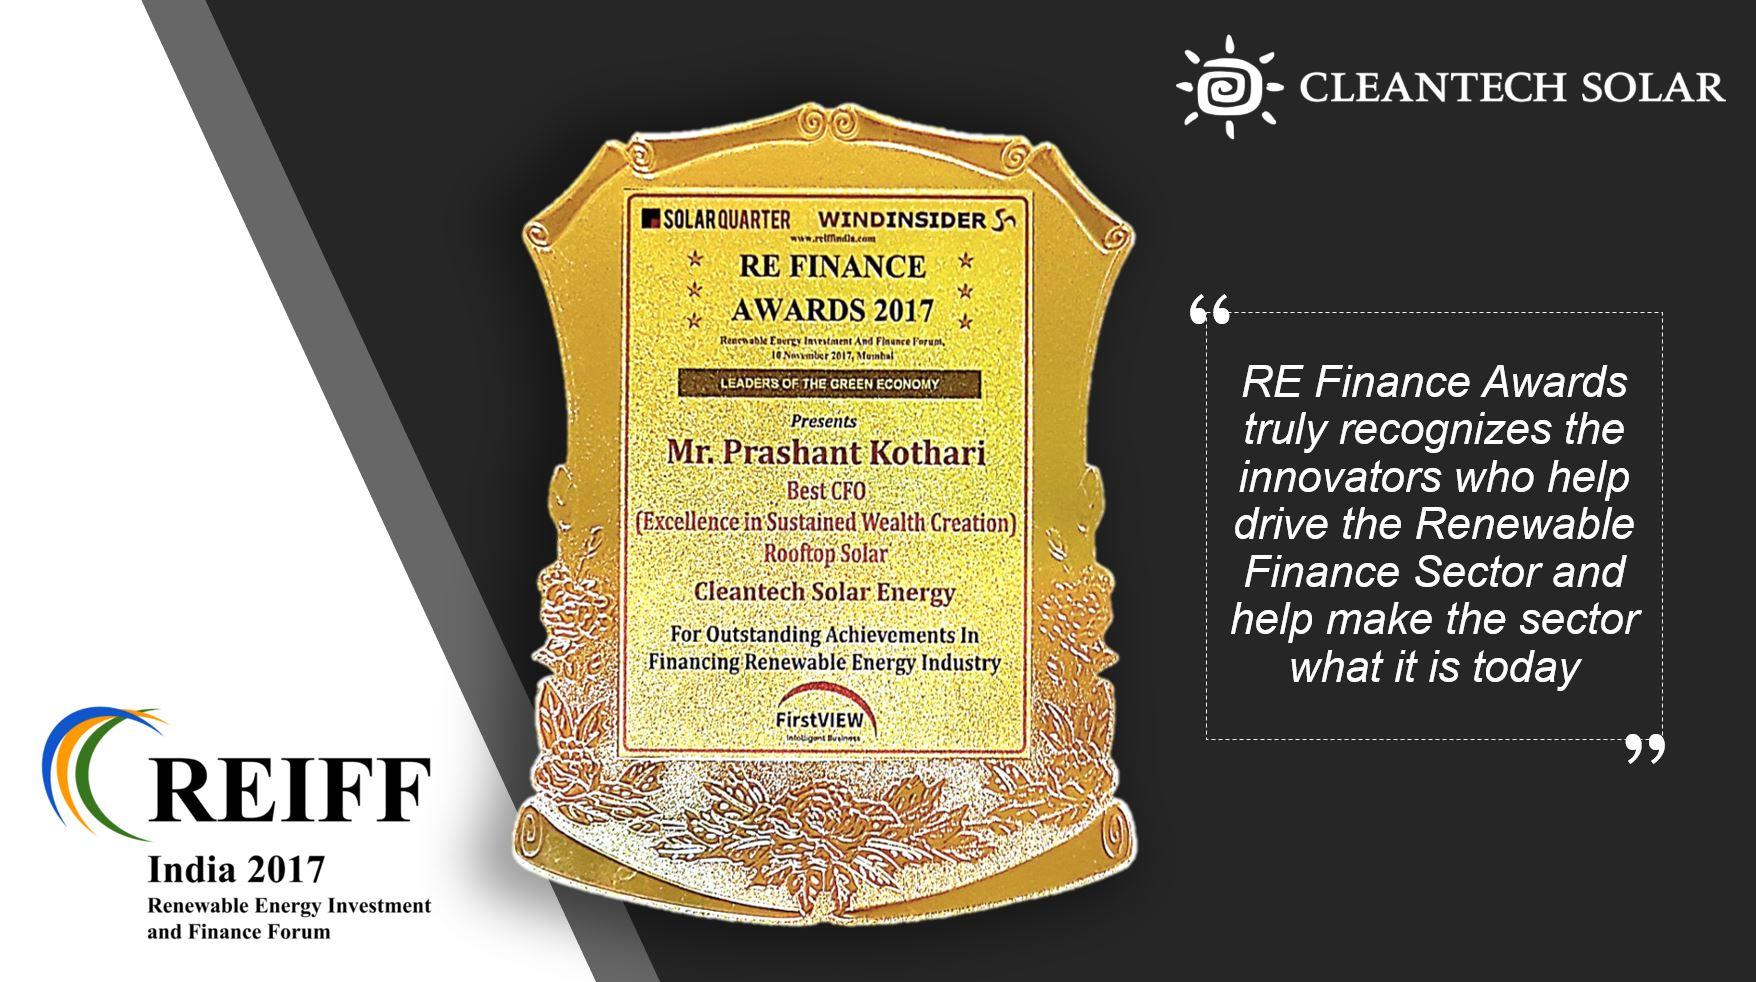 Cleantech Solar Finance Director Best CFO Award